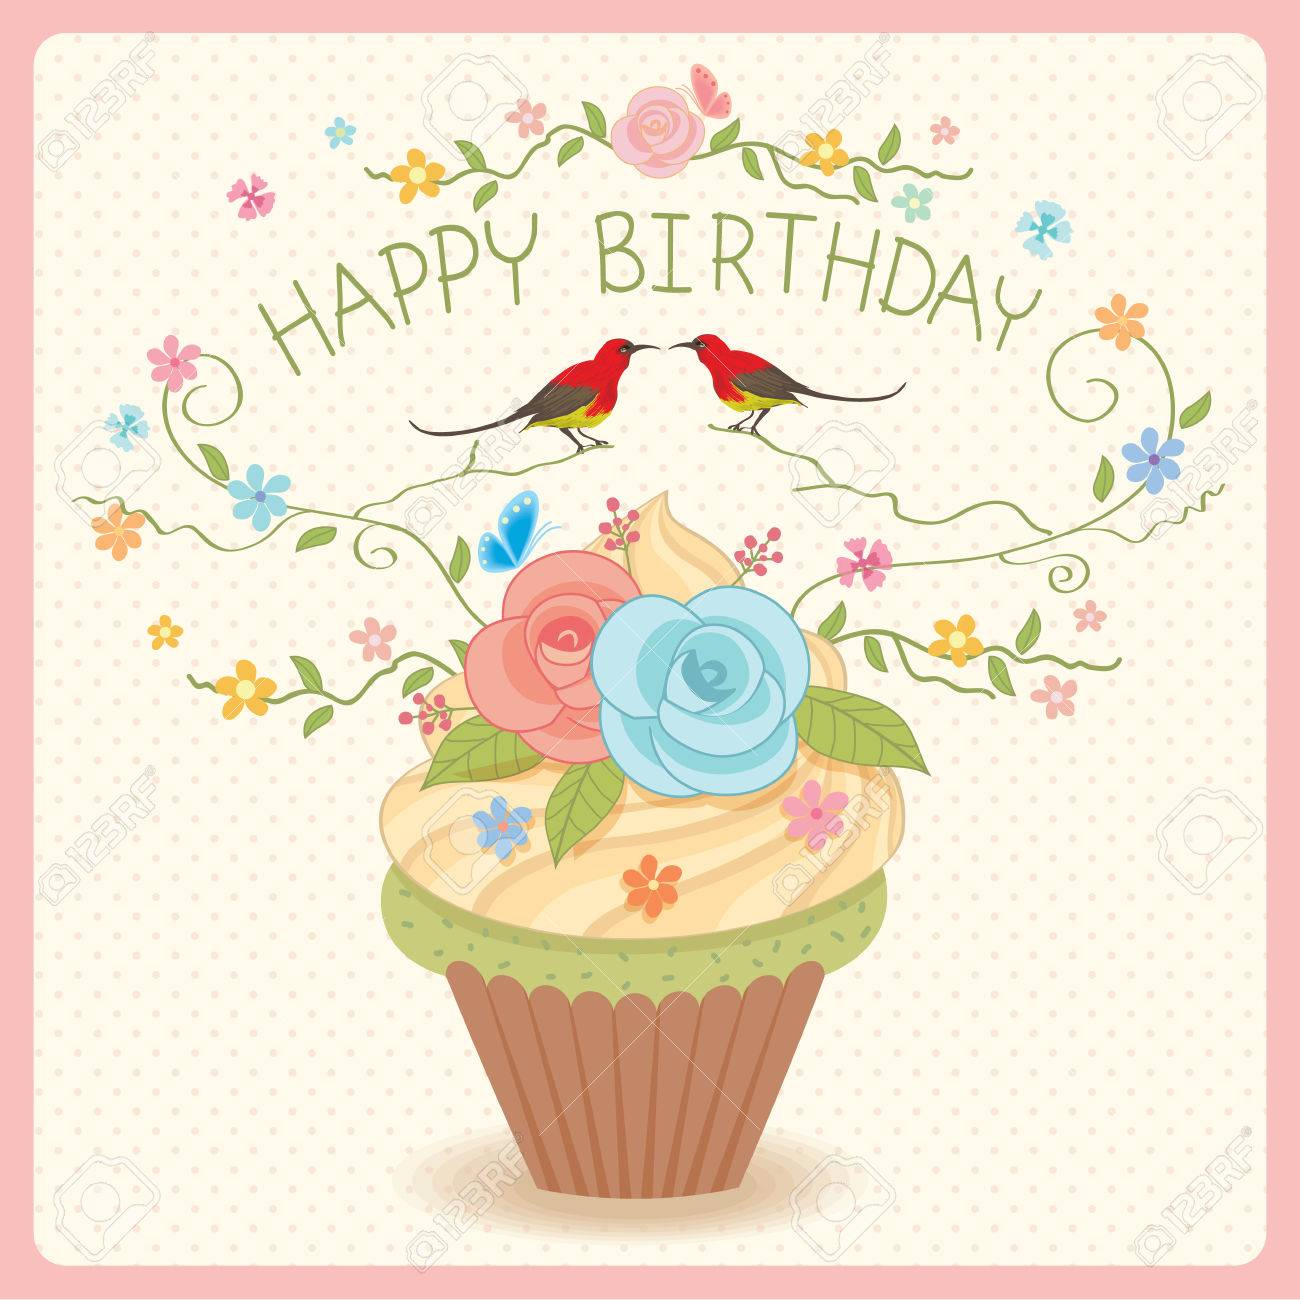 Sweet Vector Cupcake Decoration With Flowers And Couple Birds For Happy Birthday Card Stock